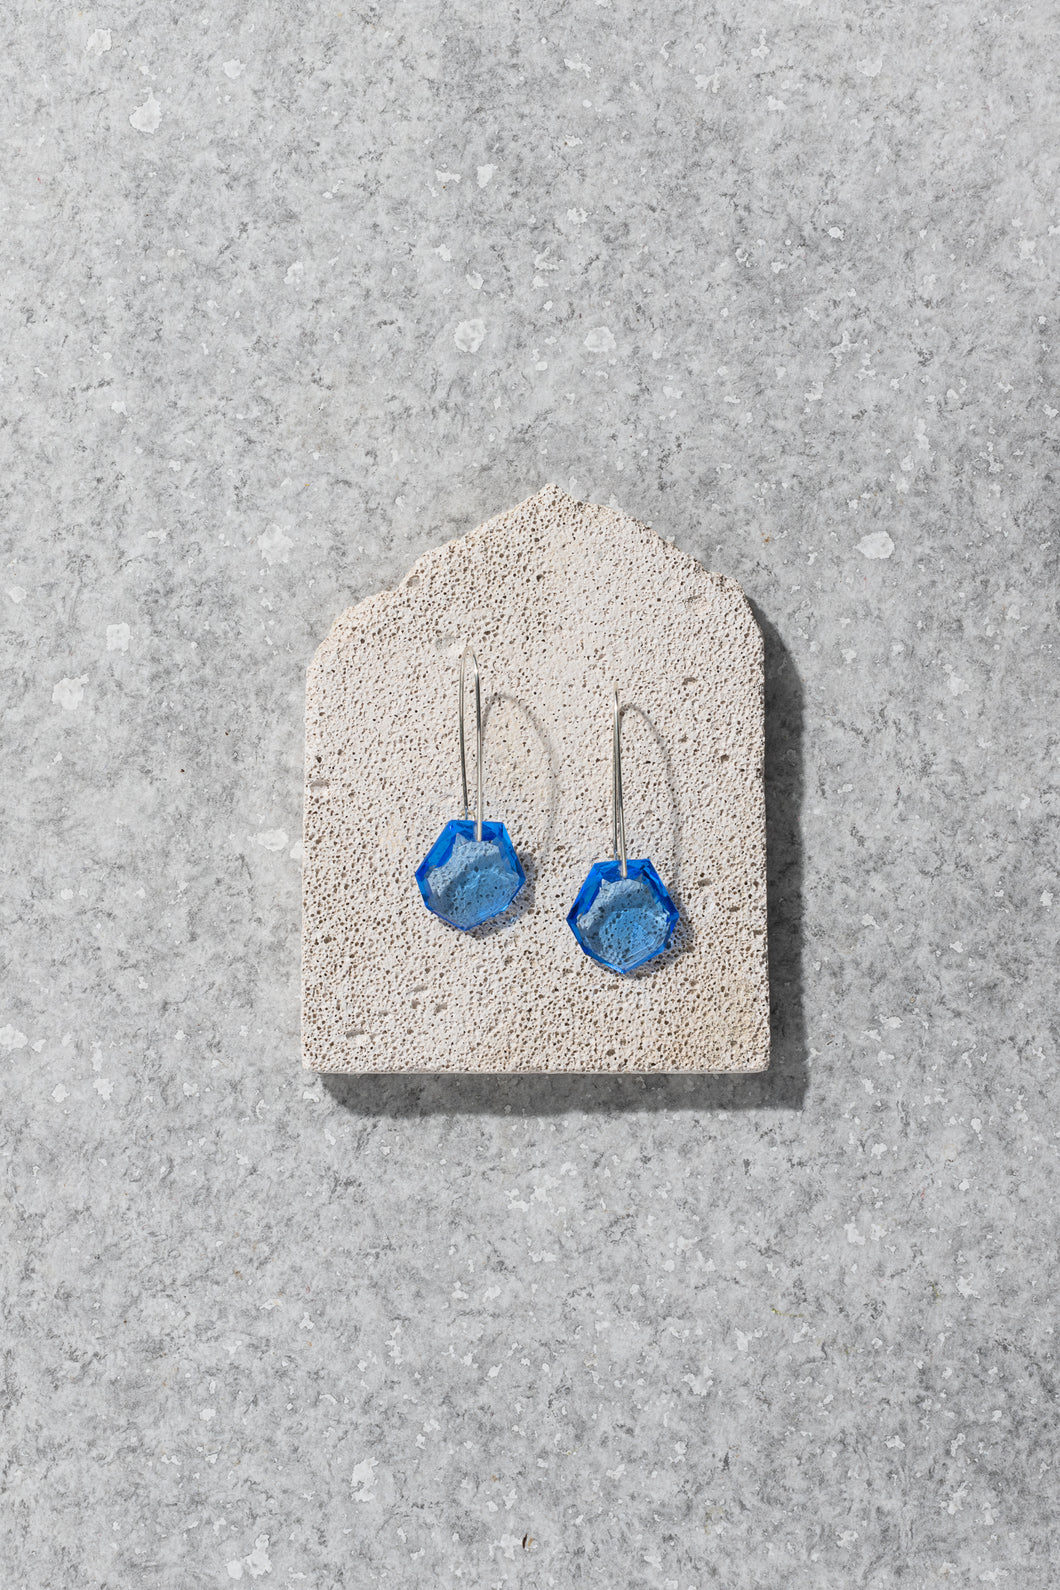 1930s Czechoslovakian glass heptagon earrings – blue